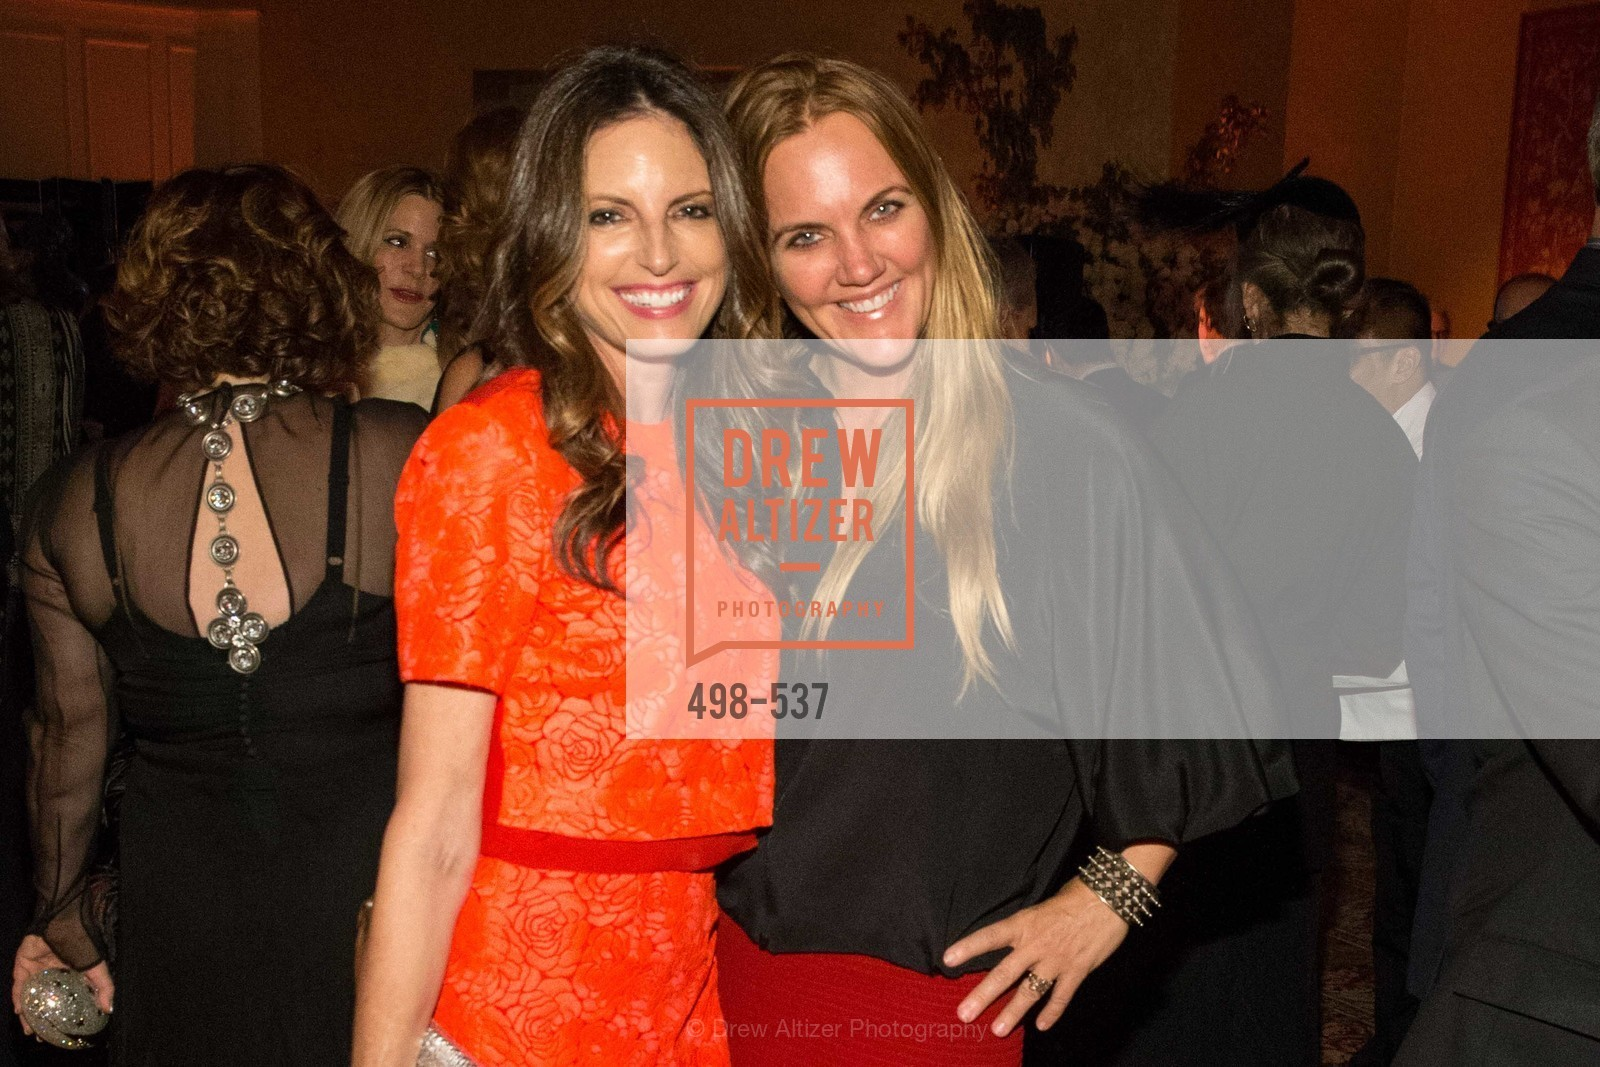 Gabriella Sarlo, Jen Wick, TOP OF THE MARK'S 75TH Anniversary Party, US, November 7th, 2014,Drew Altizer, Drew Altizer Photography, full-service event agency, private events, San Francisco photographer, photographer California